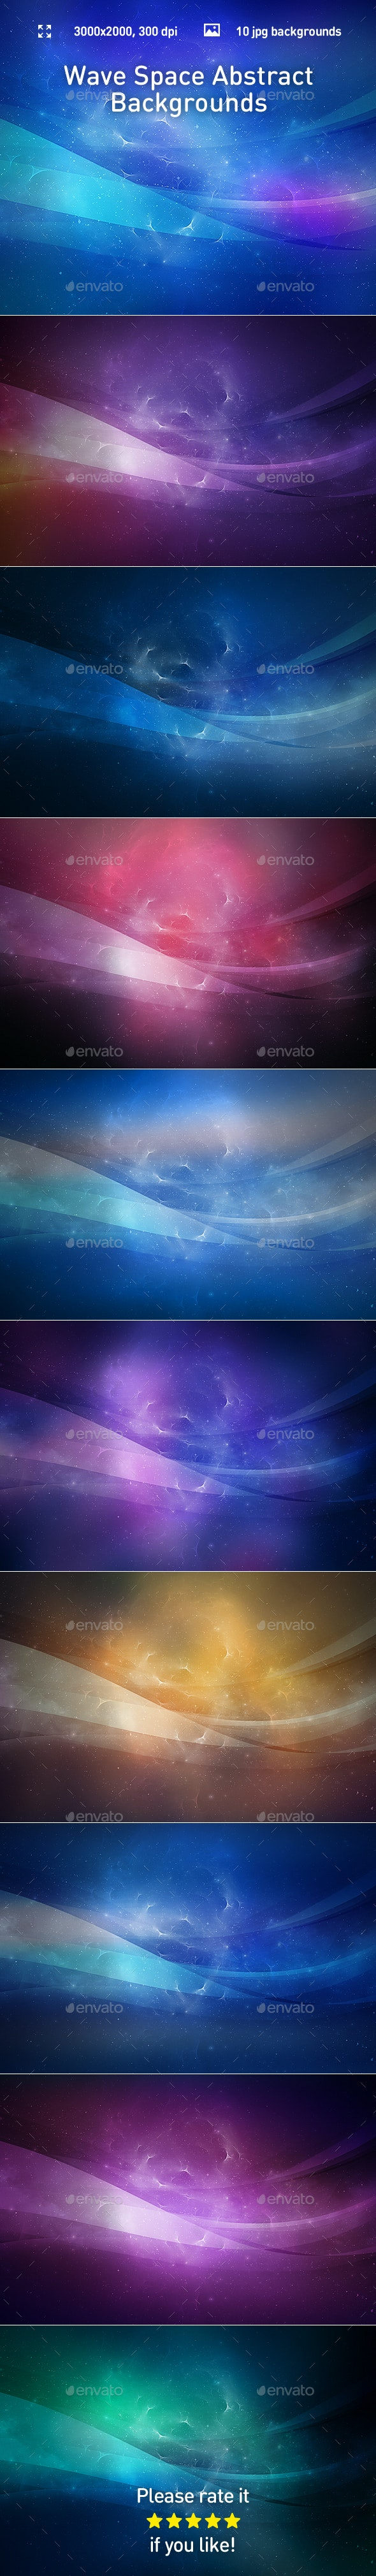 Wave Space Abstract Backgrounds - Abstract Backgrounds